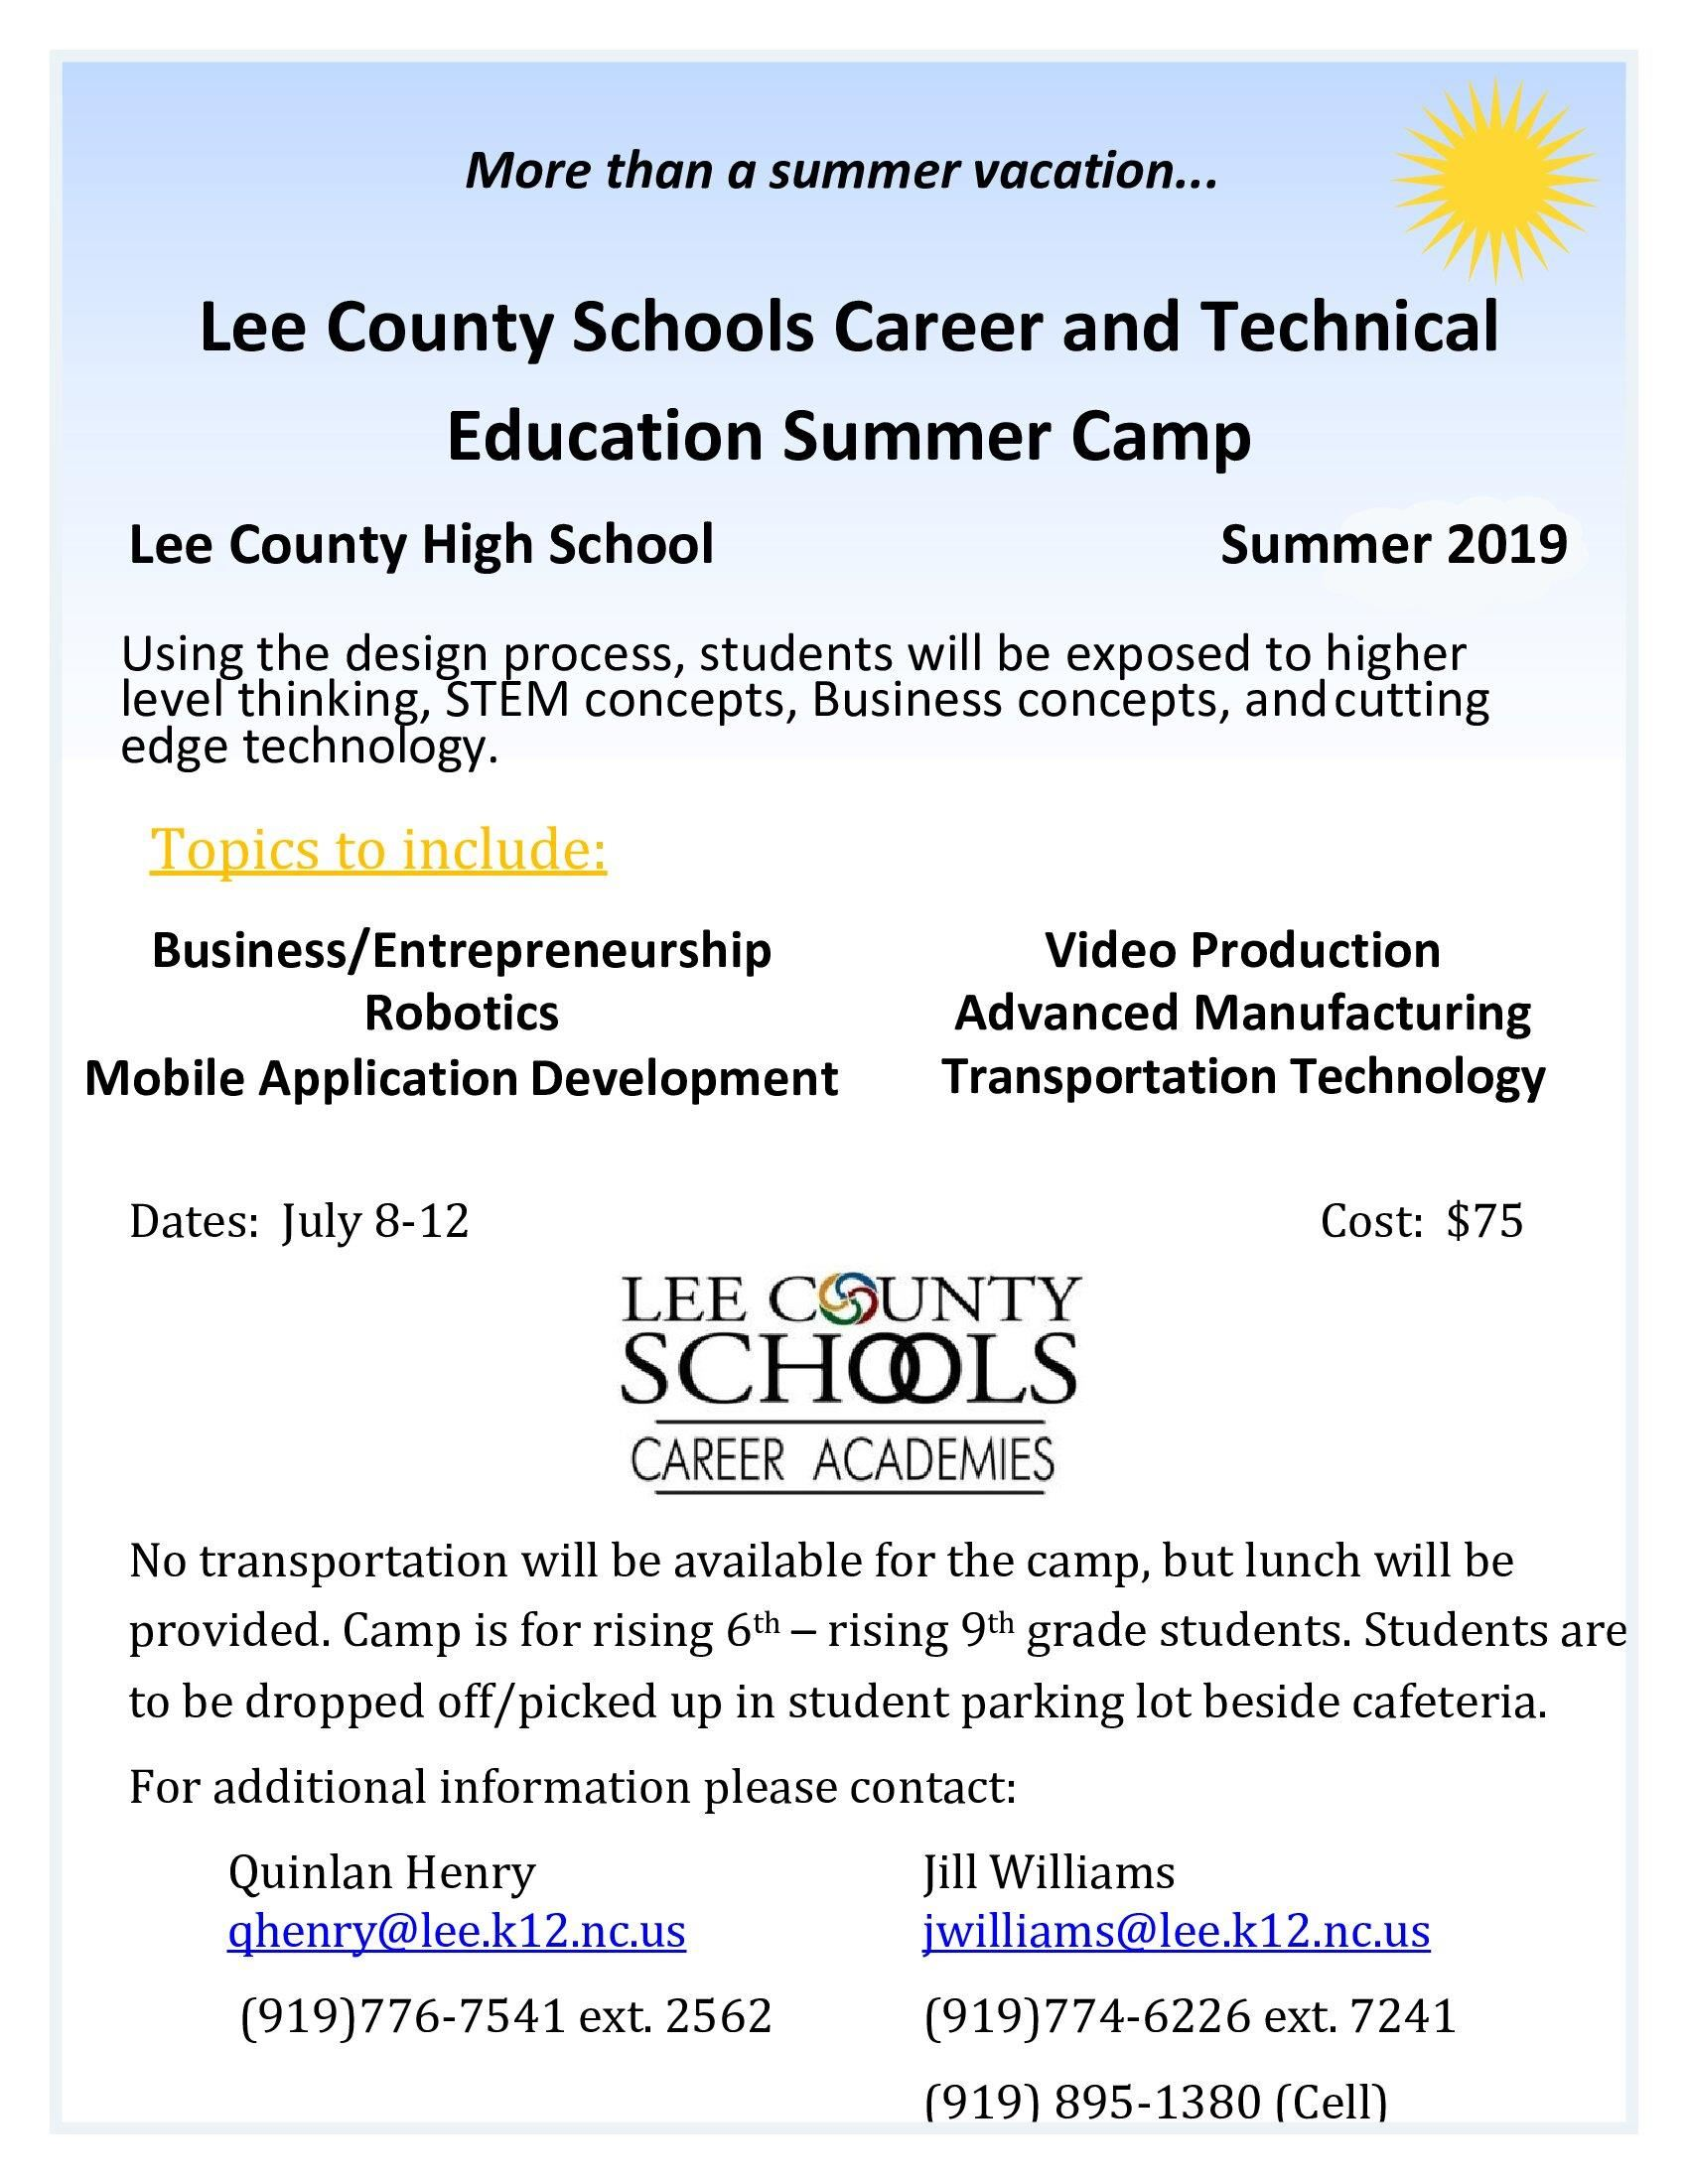 Lee County Schools Career and Technical Education Summer Camp